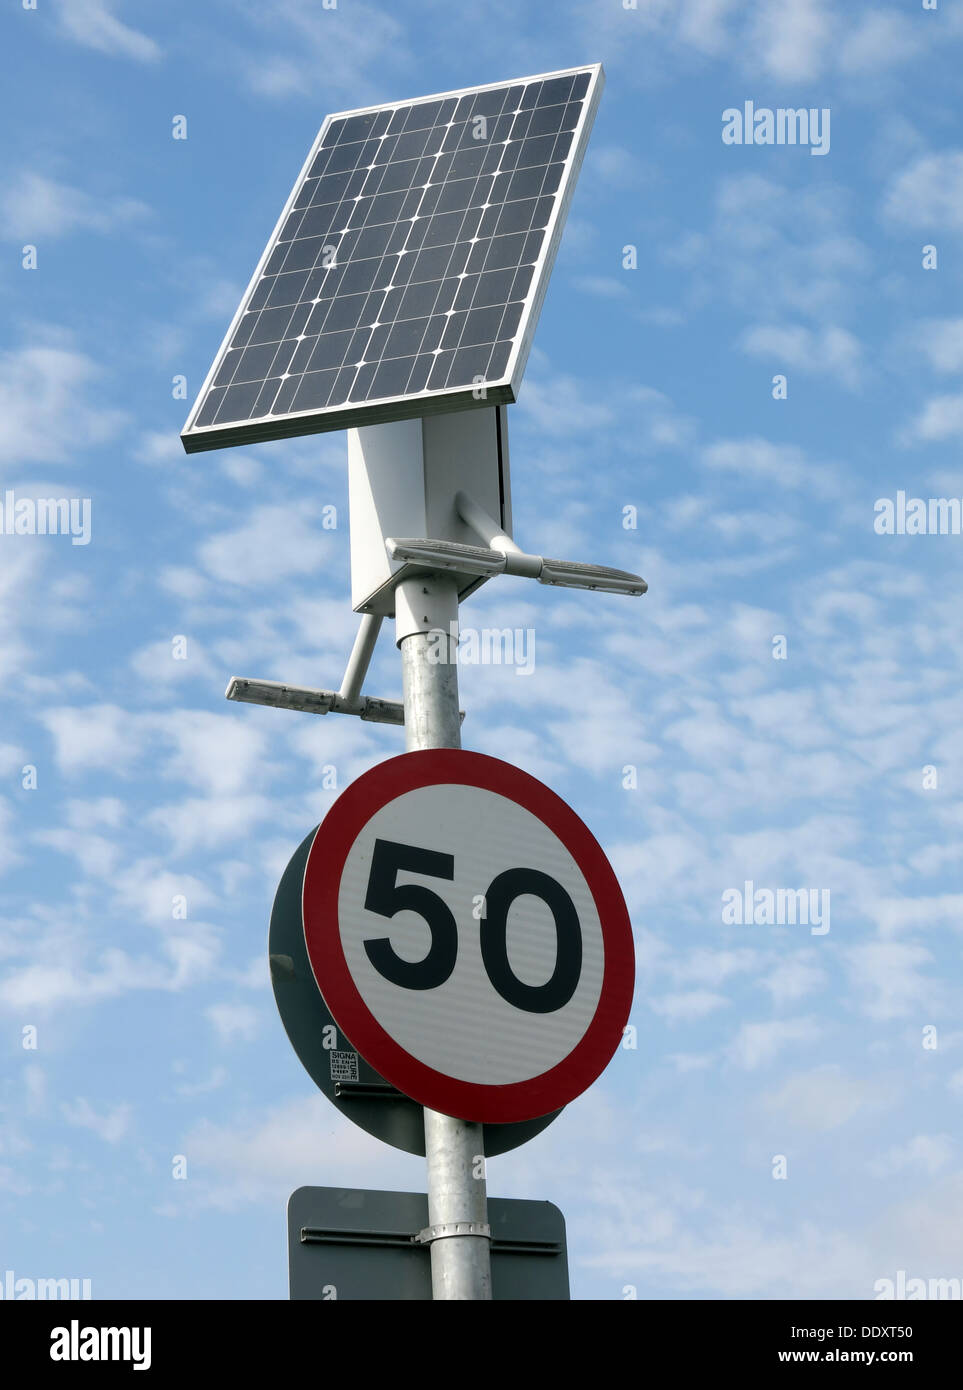 Solar powered street furniture road speed 50 mph sign , Lymm, Warrington, Cheshire, England, UK - Stock Image